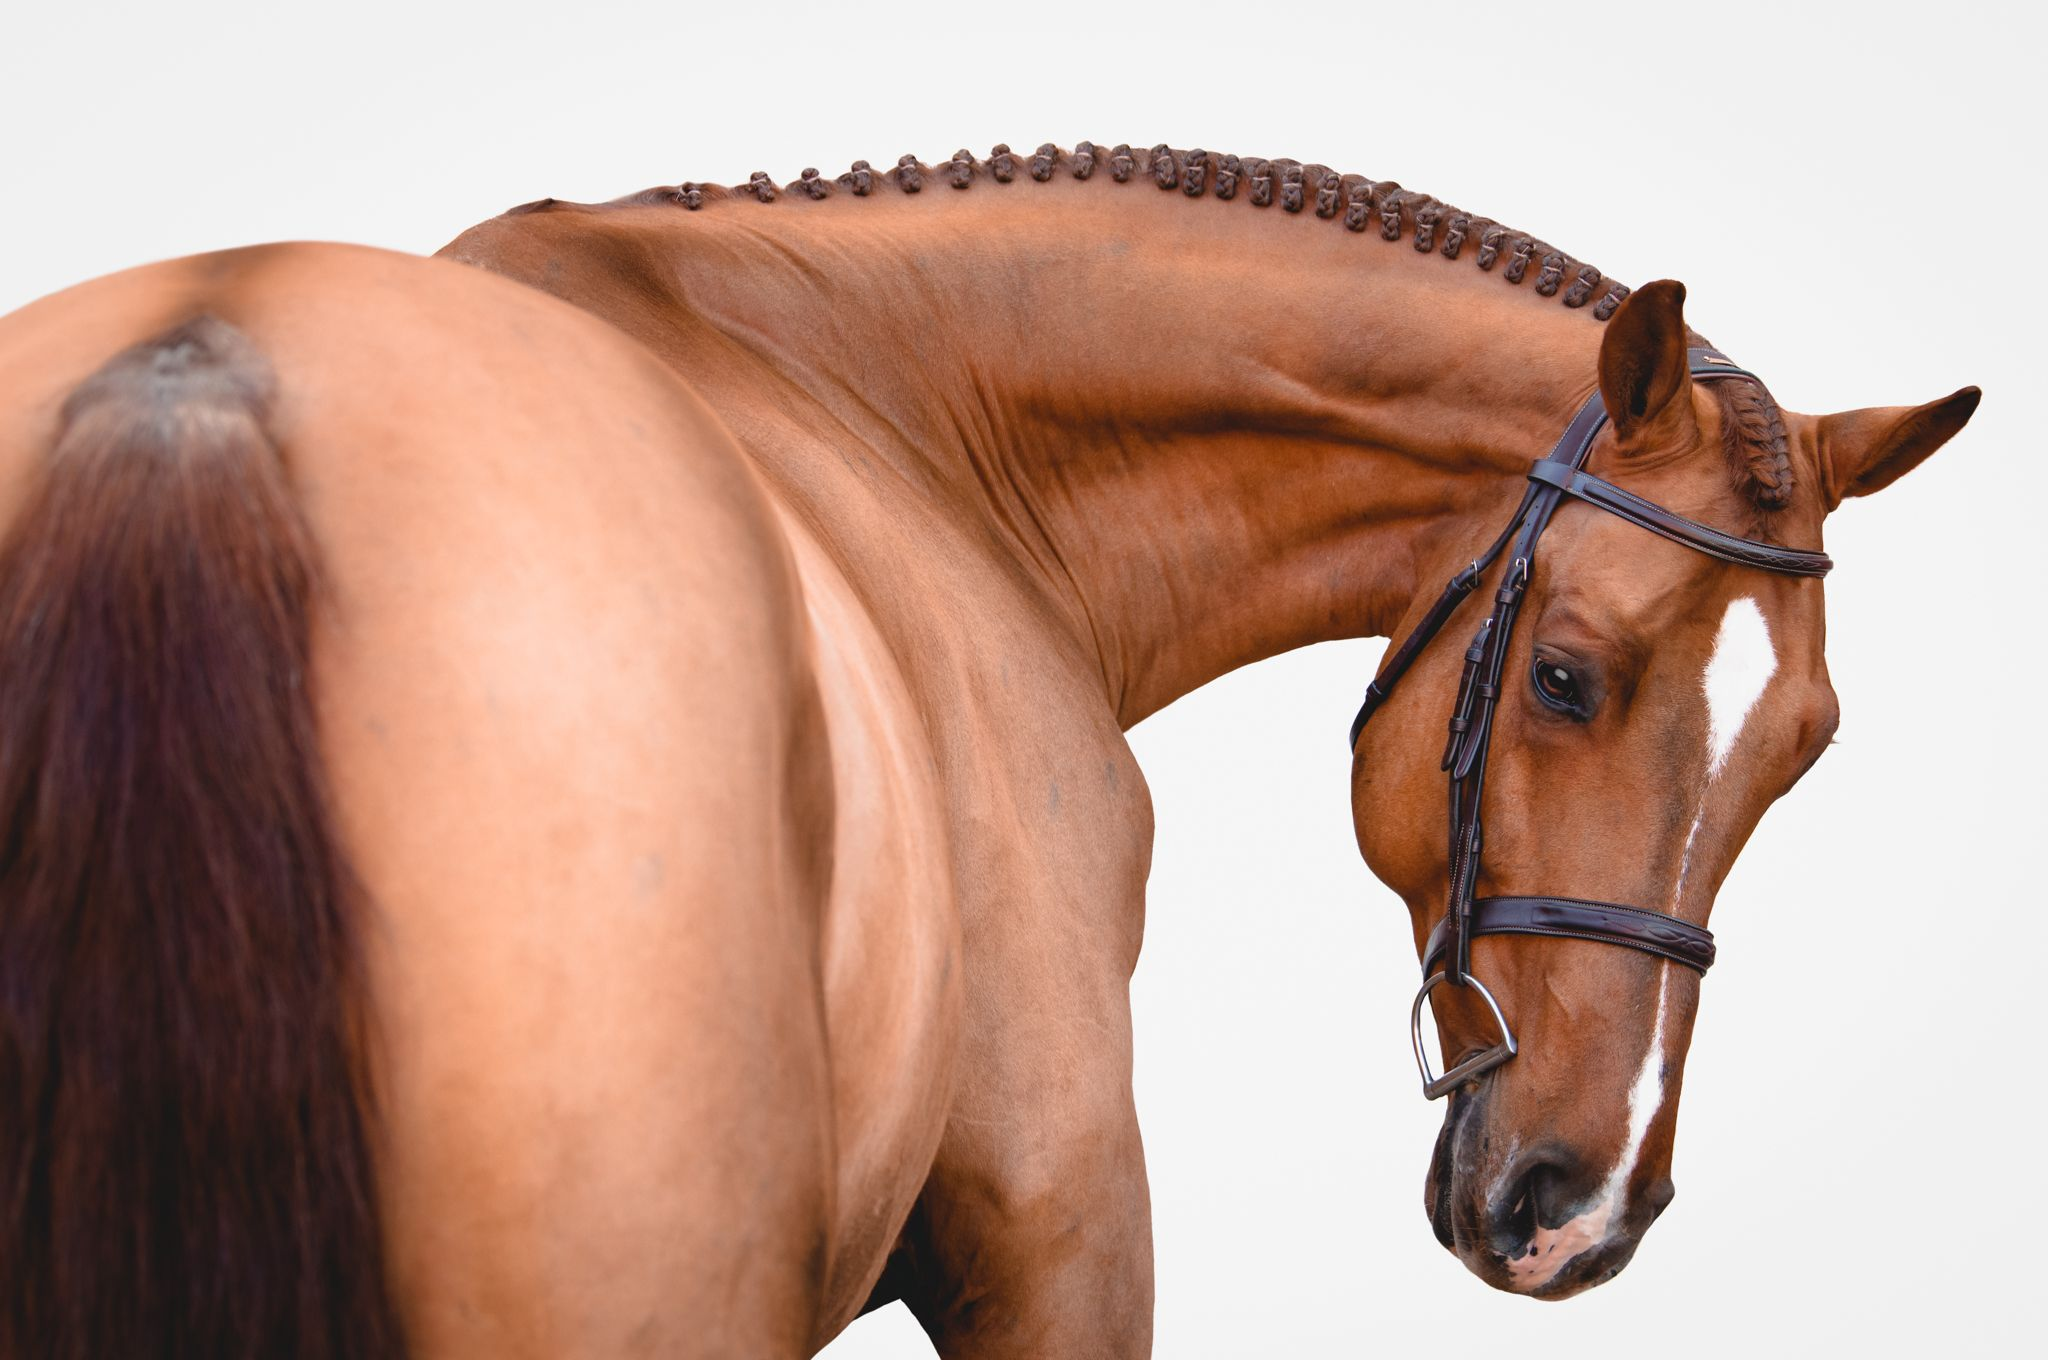 Chestnut horse with white stripe wearing bridle on white background